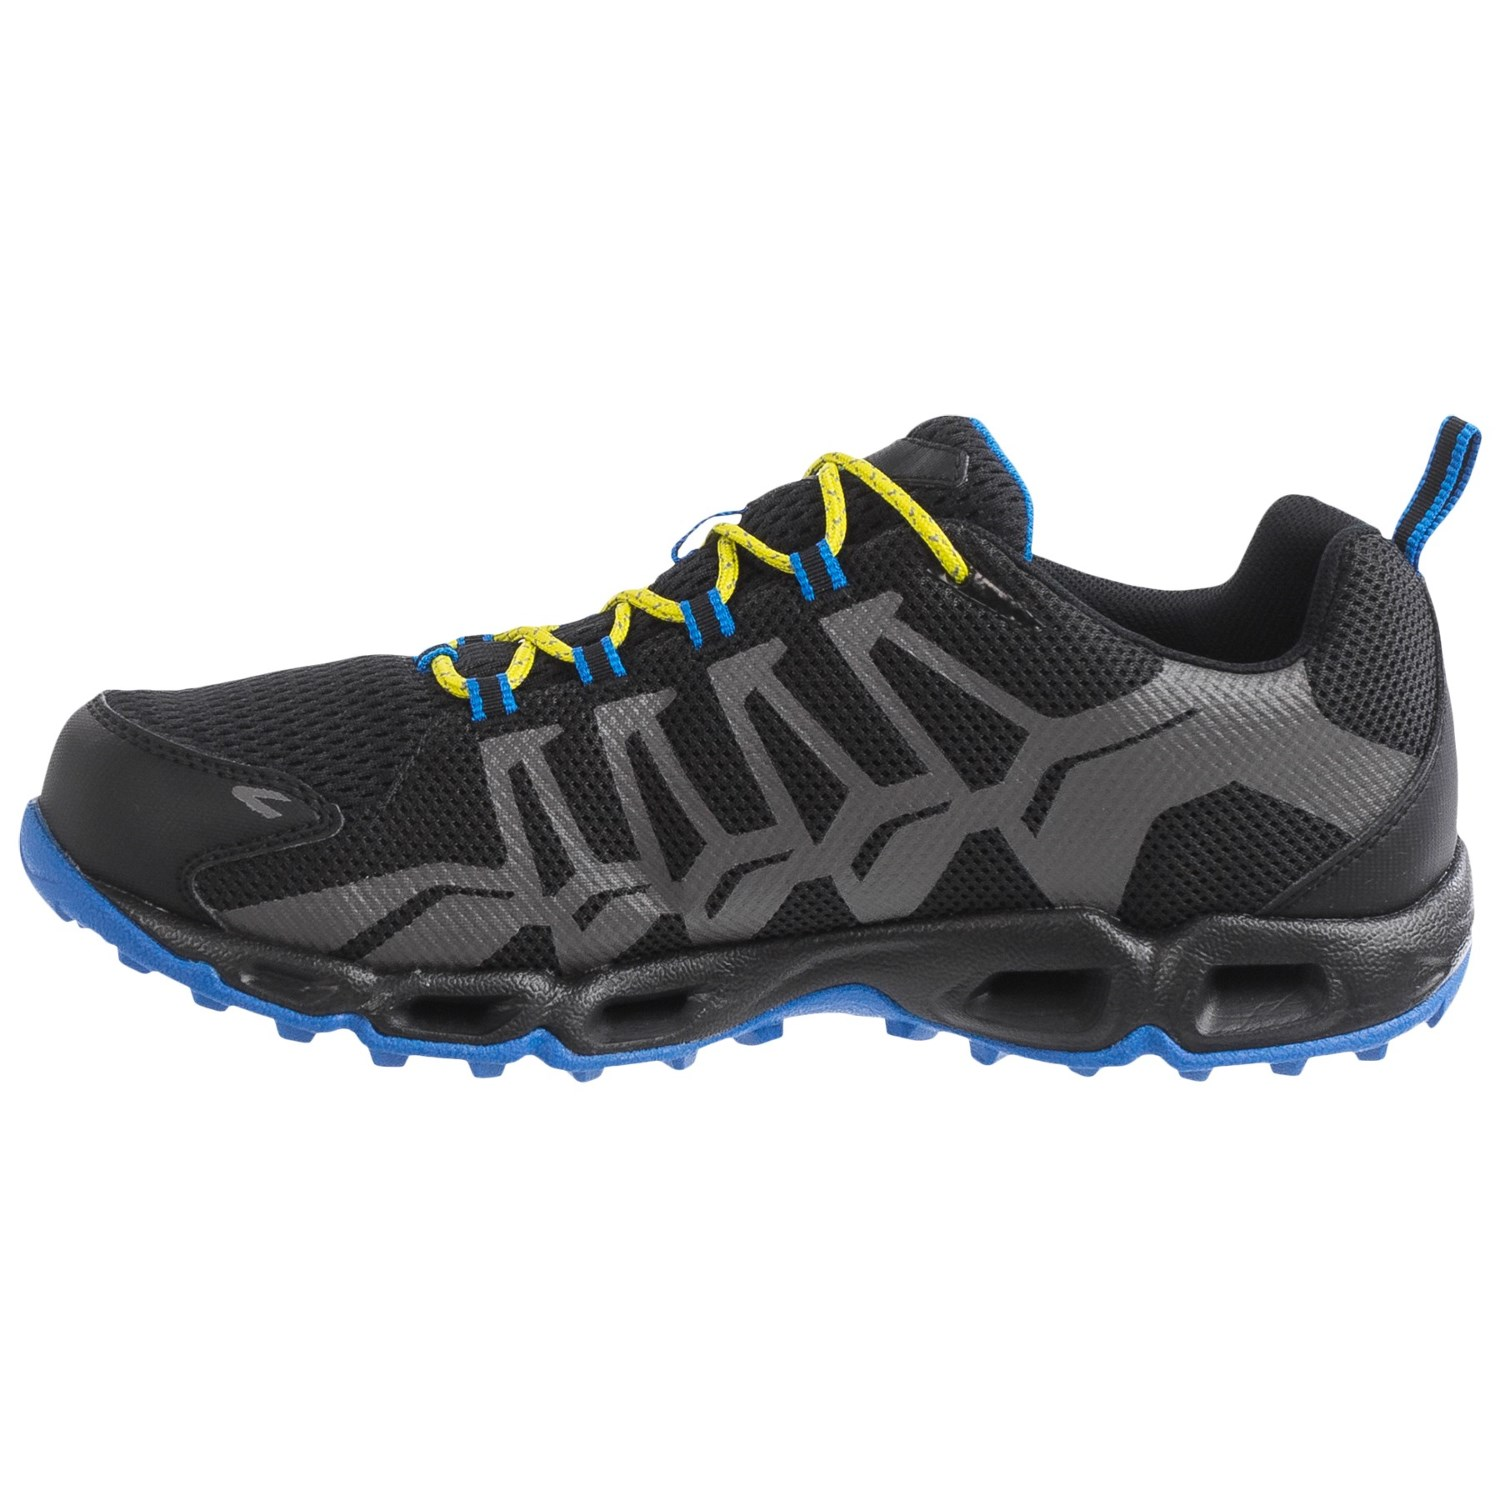 Columbia Sportswear Ravenous Trail Running Shoes